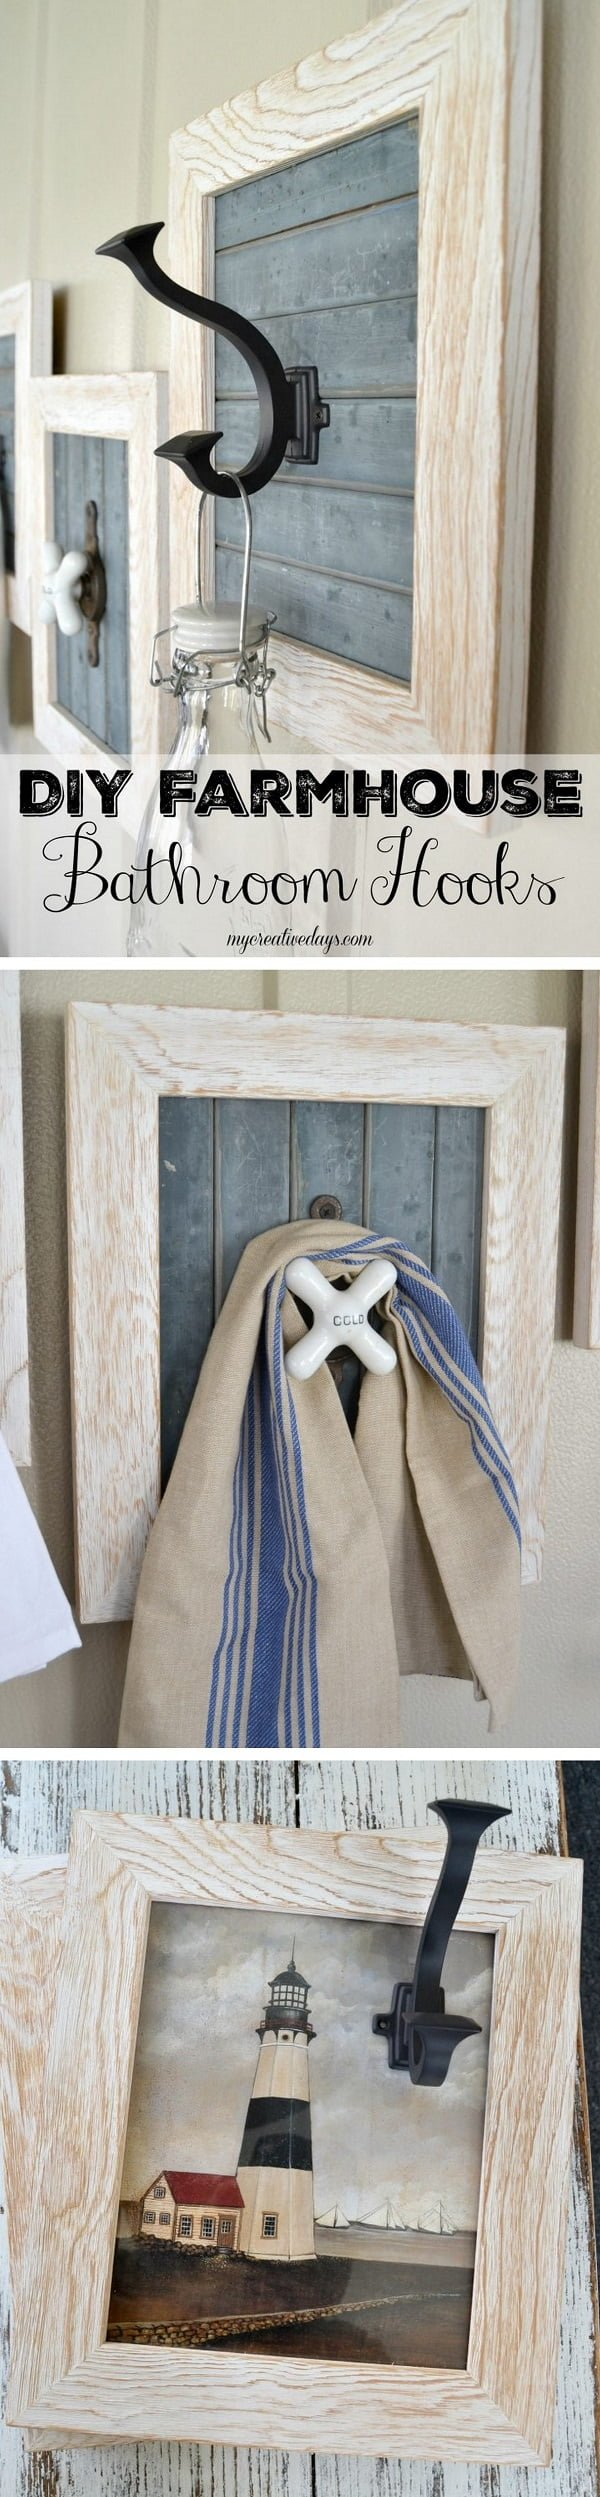 How to make your own DIY farmhouse style bathroom hooks